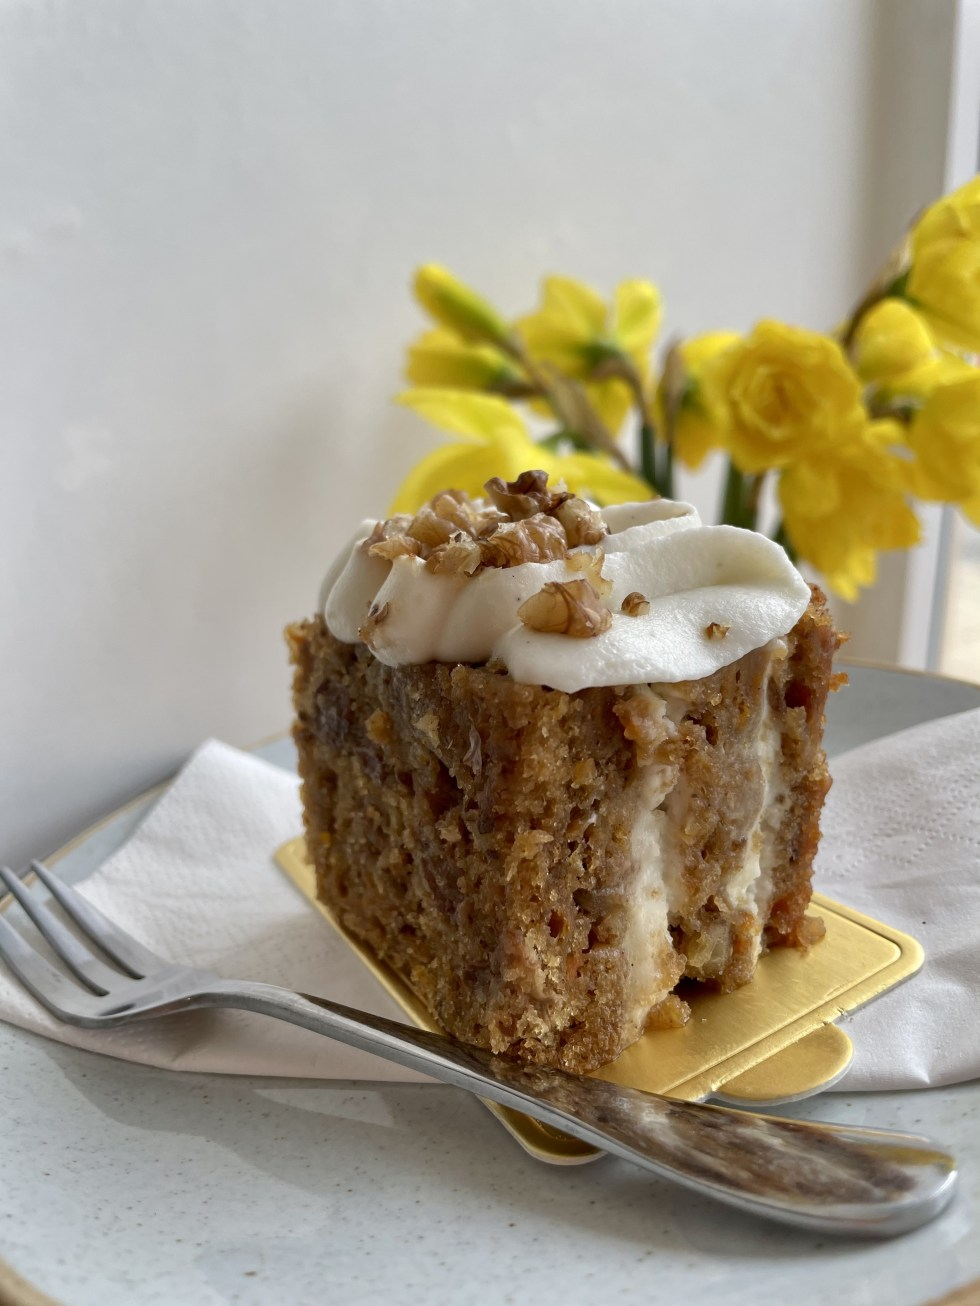 Carrot Cake - surely one of your 5 a day!